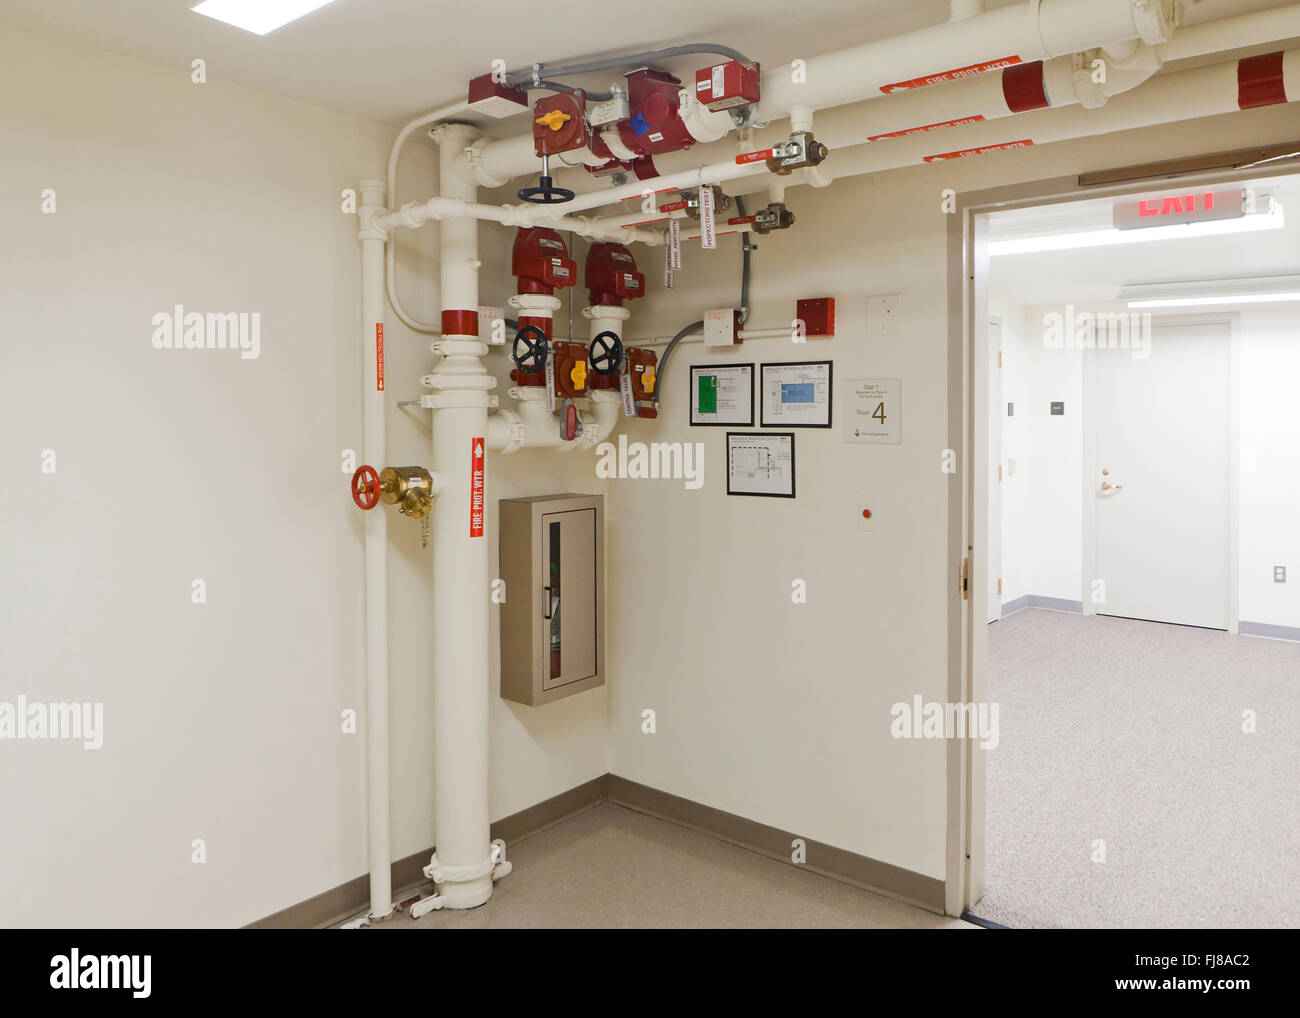 Plumbing control valve (Hydraulic control valve, water control valve) in commercial building - USA - Stock Image